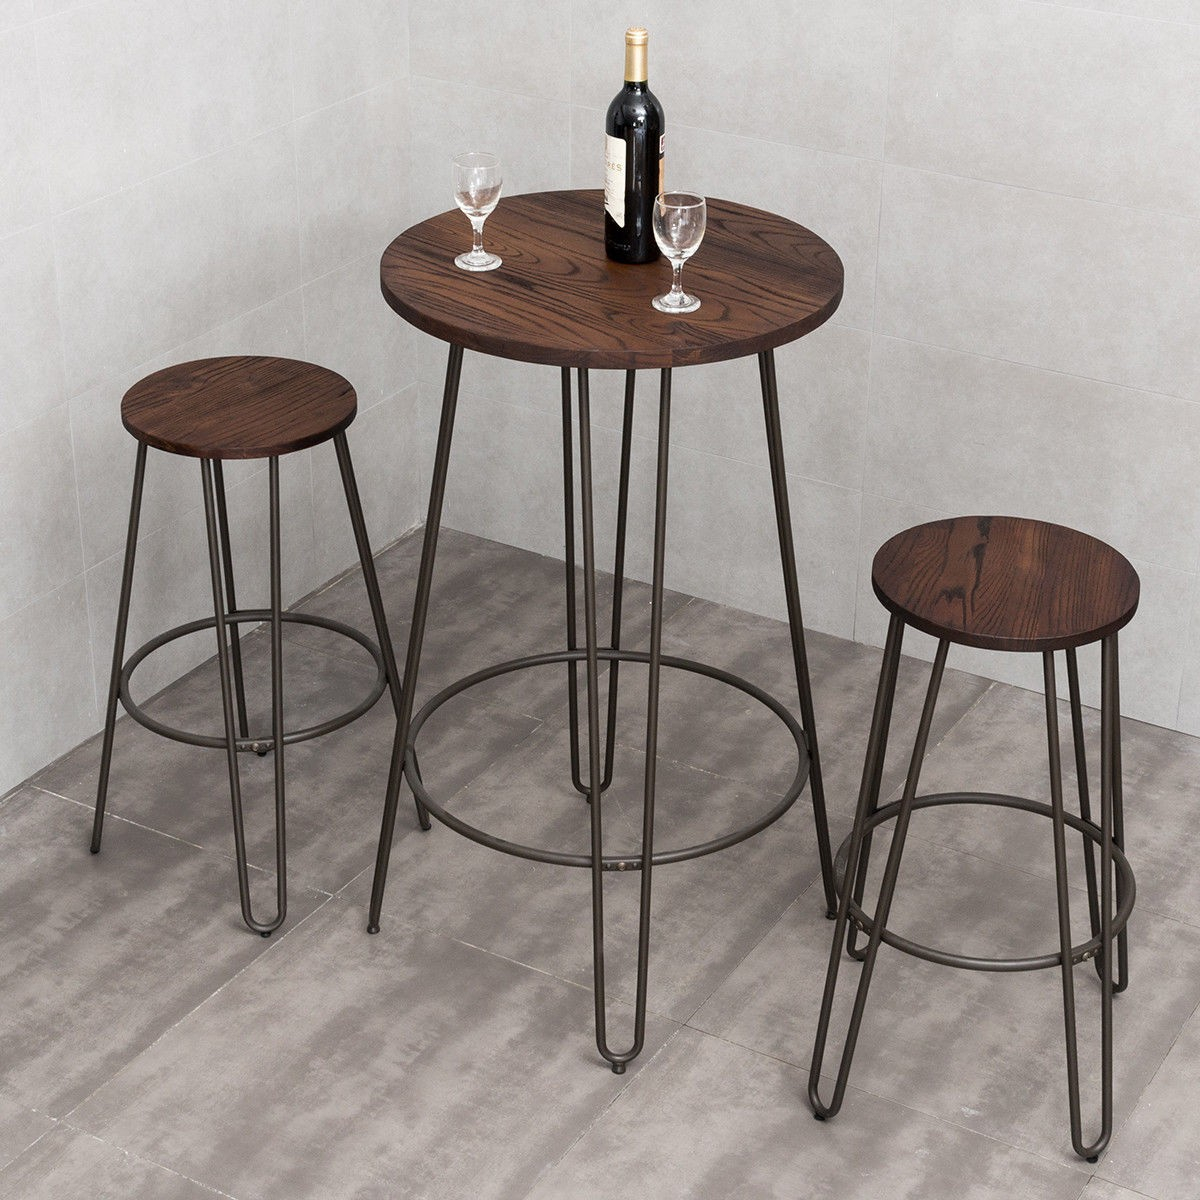 Details about Wood Top Round Bar Table Bistro Stool Set Steel Frame Home  Kitchen Dining Room